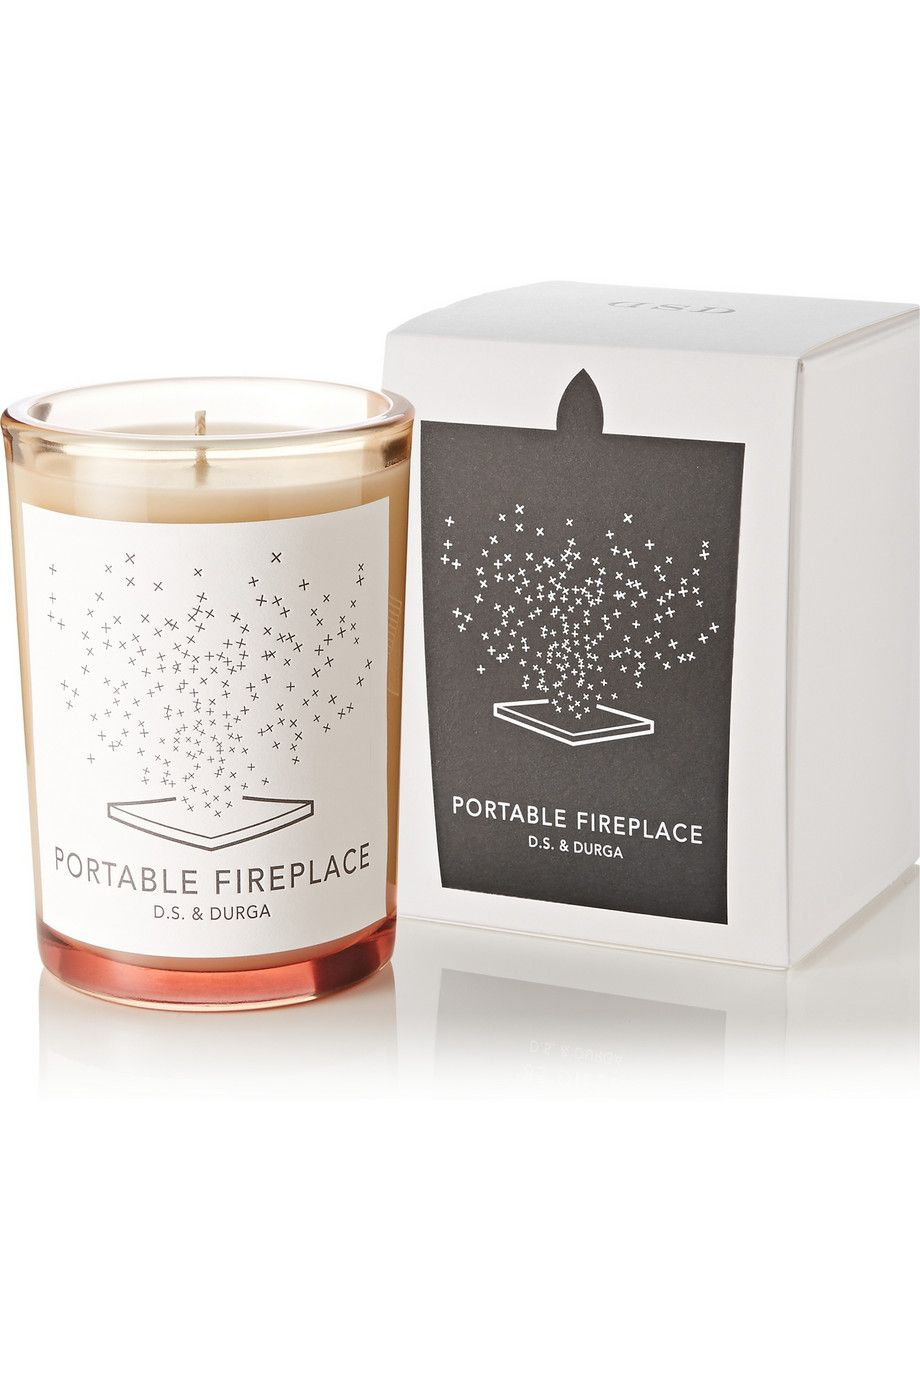 scent product floral products fireplace scented candle page fire street home